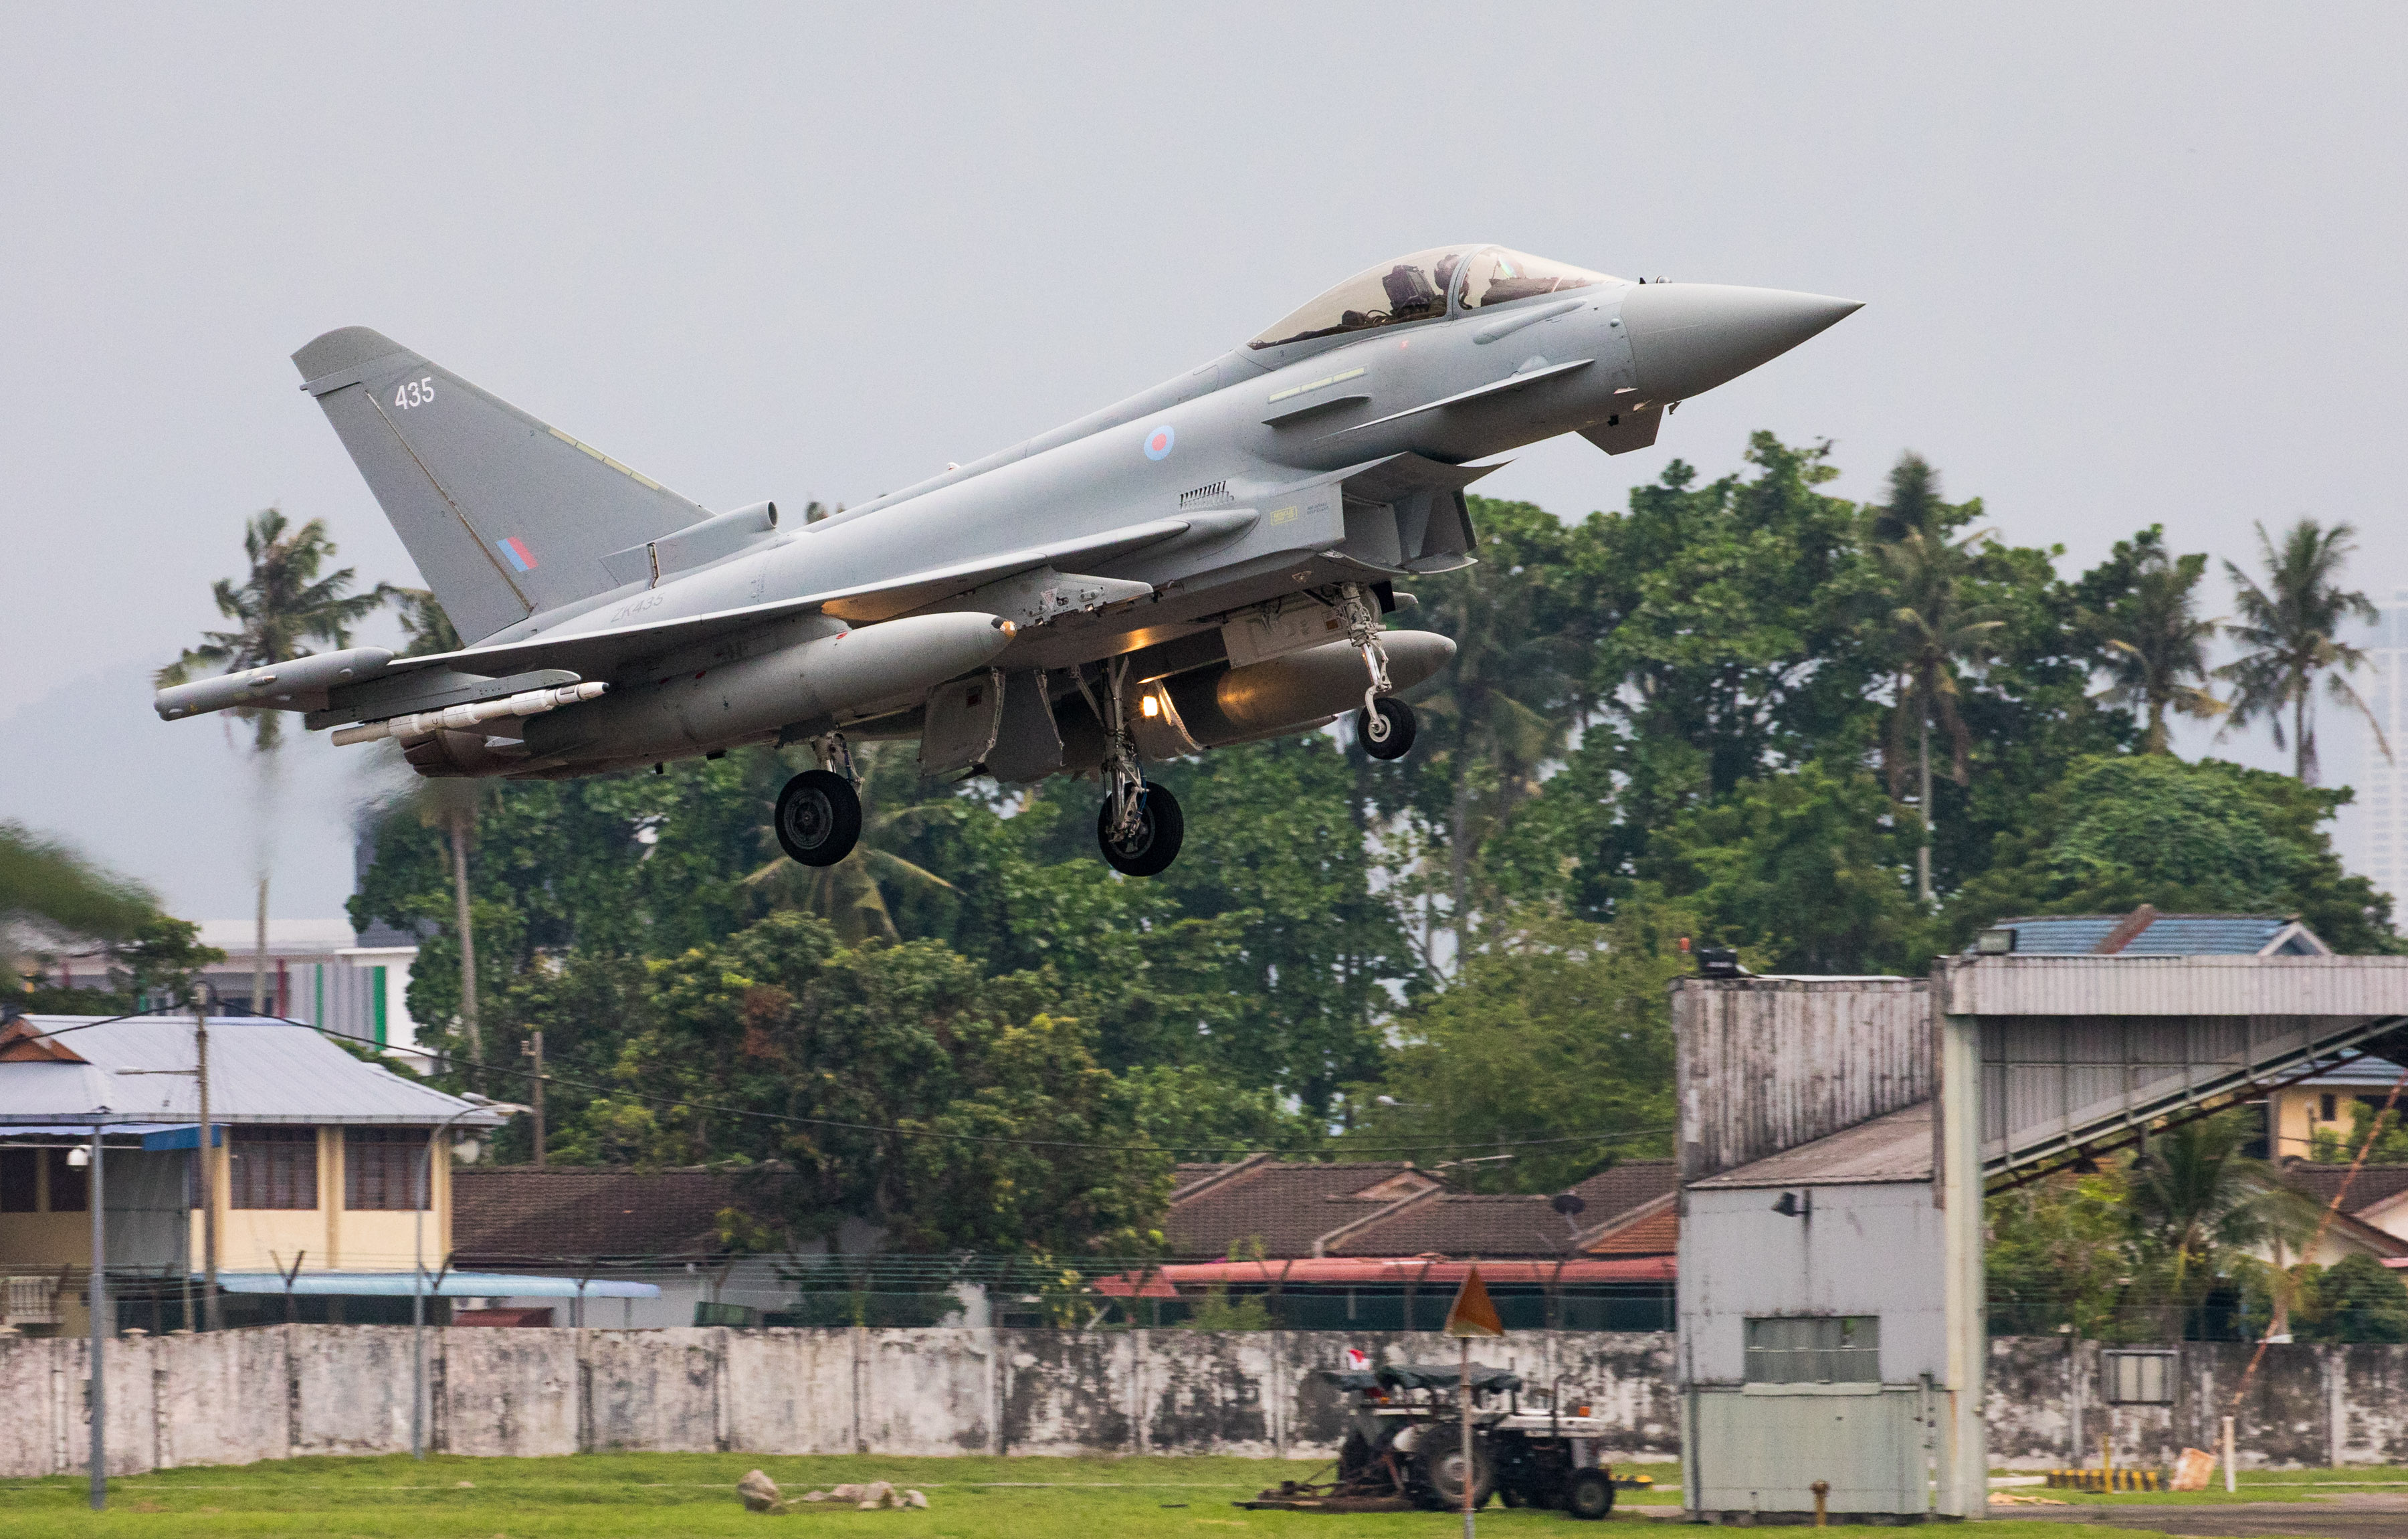 A Royal Air Force Typhoon lands at RMAF Butterworth, Malaysia, in order to participate in Exercise Bersama Lima 19.  Royal Air Force (RAF) Typhoon aircraft and personnel from II (Army Co-Operation) Squadron, RAF Lossiemouth, have deployed to Royal Malaysian Air Force (RMAF) Butterworth in Penang, Malaysia, in order to participate in Exercise Bersama Lima 19.  BL19 is an annual Five Powers Defence Arrangement (FPDA) Maritime/Air Field Training Exercise (FTX) and Joint Command Post Exercise (CPX) conducted to enhance the operability and mutual co-operation among the FPDA nations.  The Ex is sponsored on a rotational basis between the armed forces of Malaysia and the Republic of Singapore and facilitated by HQ Integrated Area Defence System (IADS).  The Ex also aims to develop the integration of Air, Maritime and Land forces to promote interoperability whilst exercising FPDA combined and joint doctrines at the tactical and operational levels.